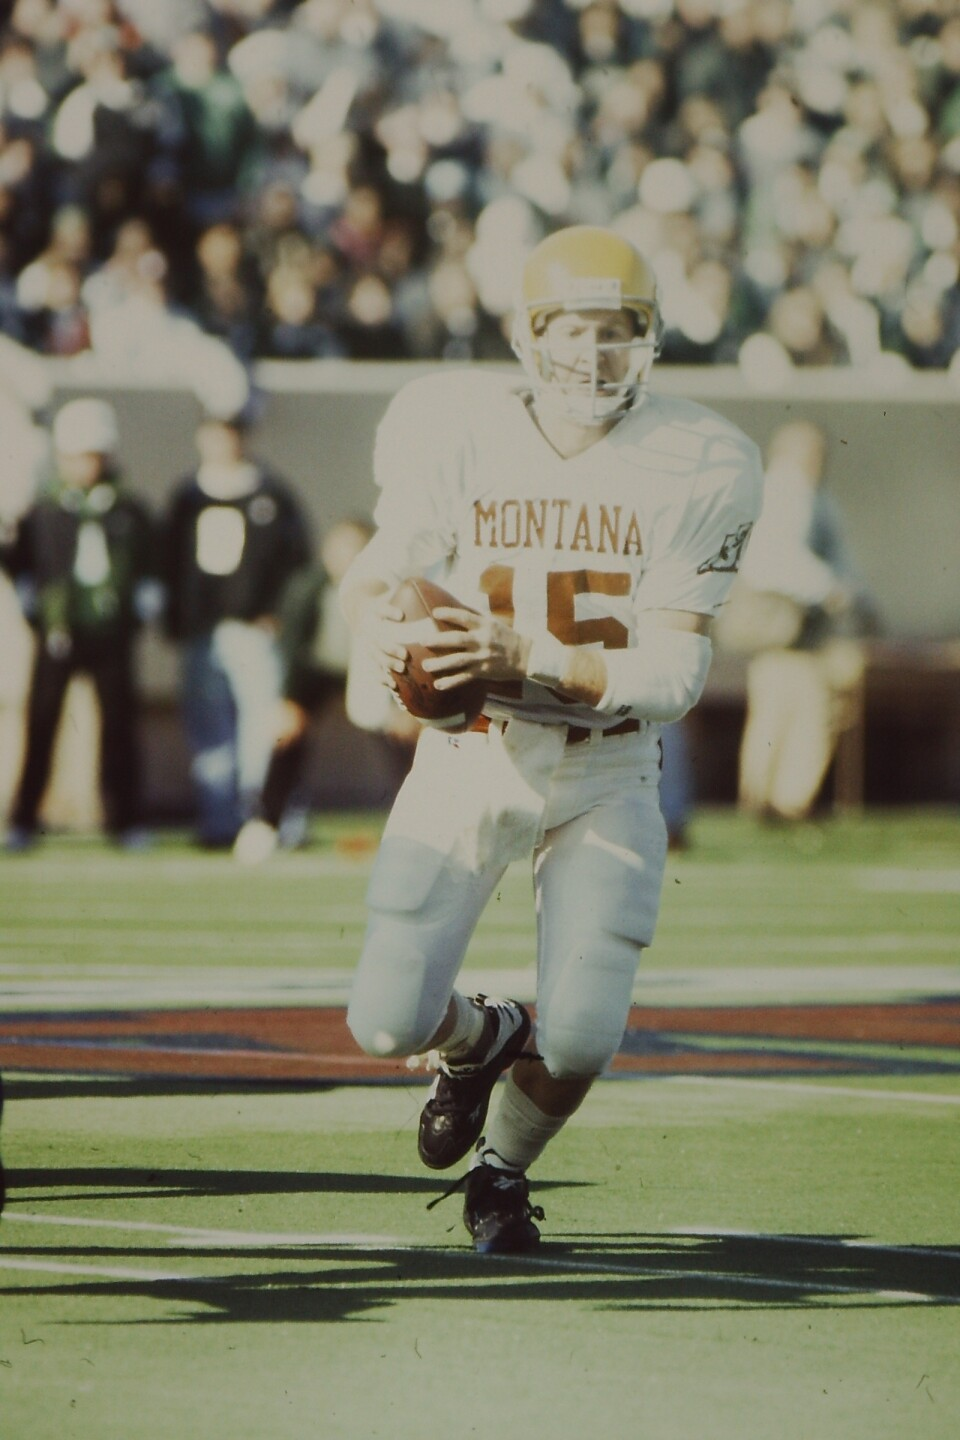 1995 Montana vs. Marshall NCAA Division I-AA national championship game